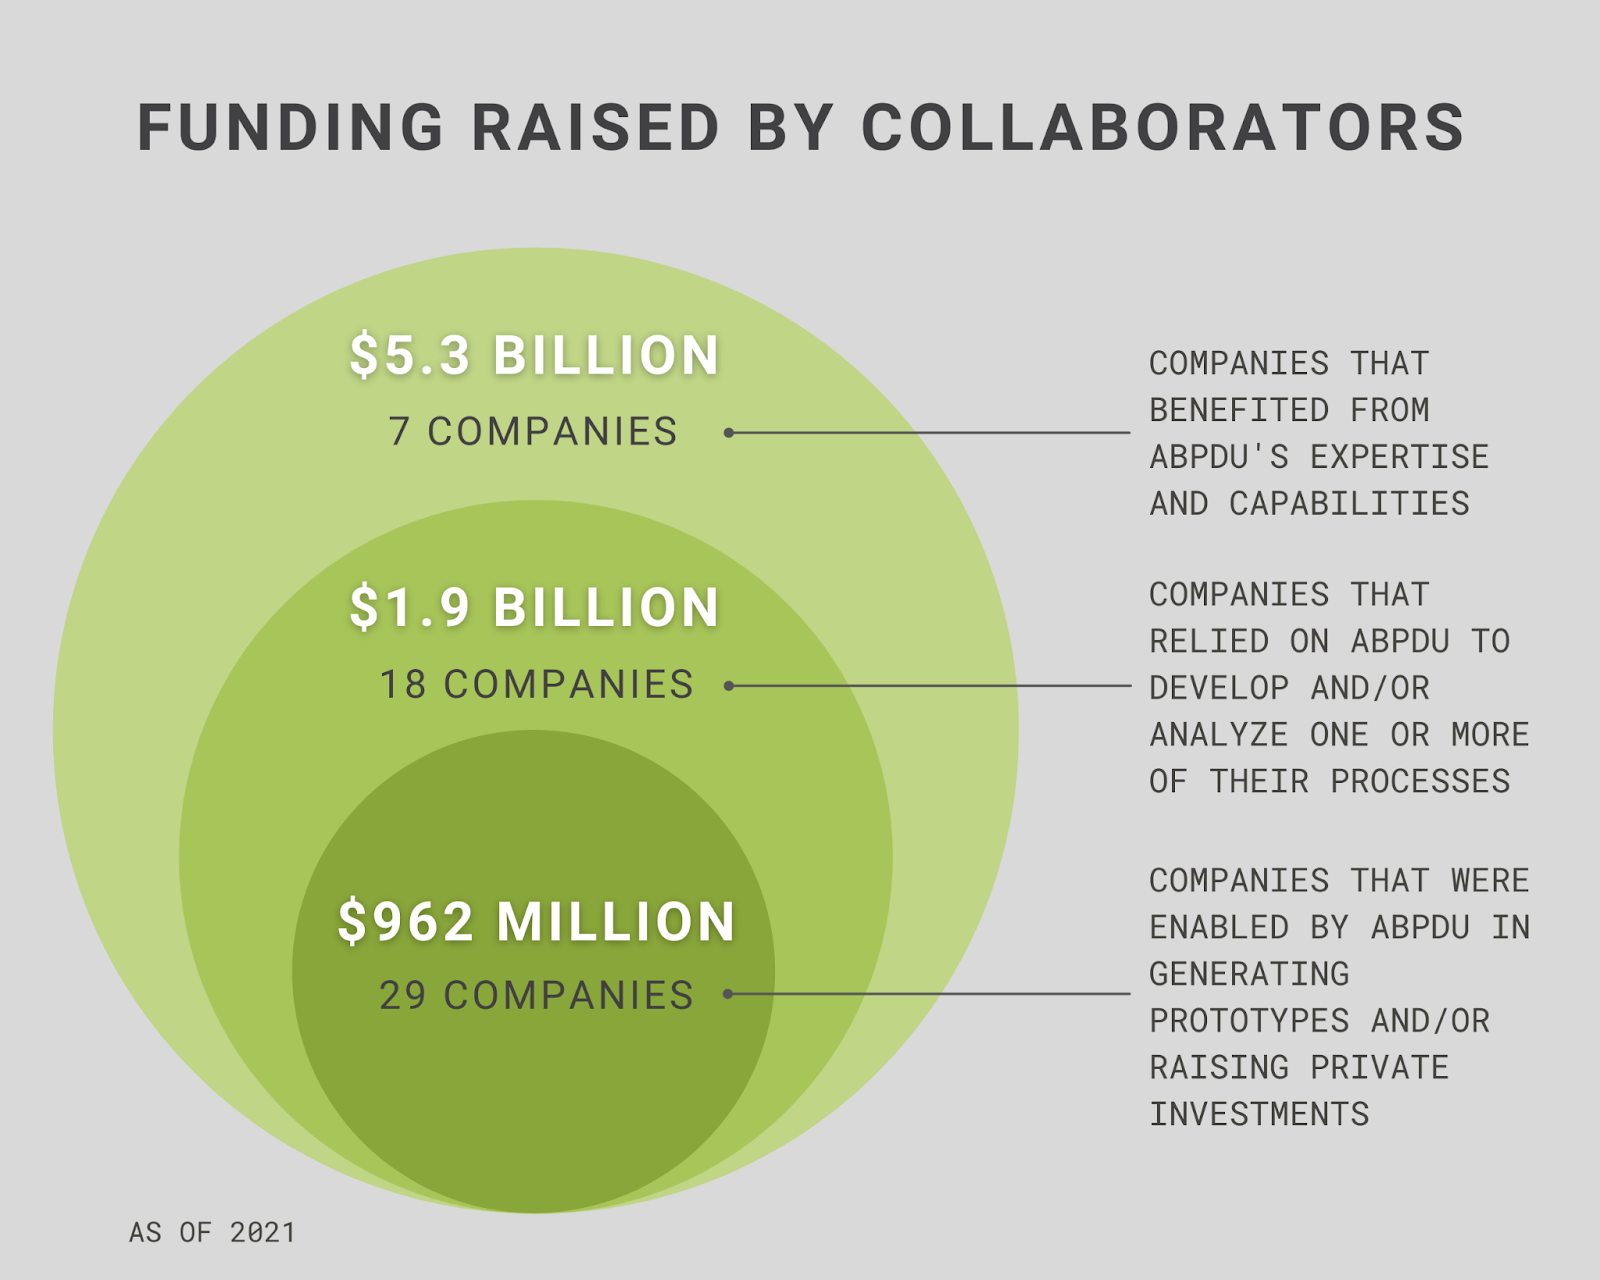 A graph displaying funding raised by ABPDU collaborators. 7 companies, which benefited from ABPDU's expertise and capabilities, have raised $5.3 billion. 18 companies, which relied on ABPDU, have raised $1.9 billion. 29 companies, which were enabled by ABPDU in generating prototypes and/or raising private investments, have raised $962 million.